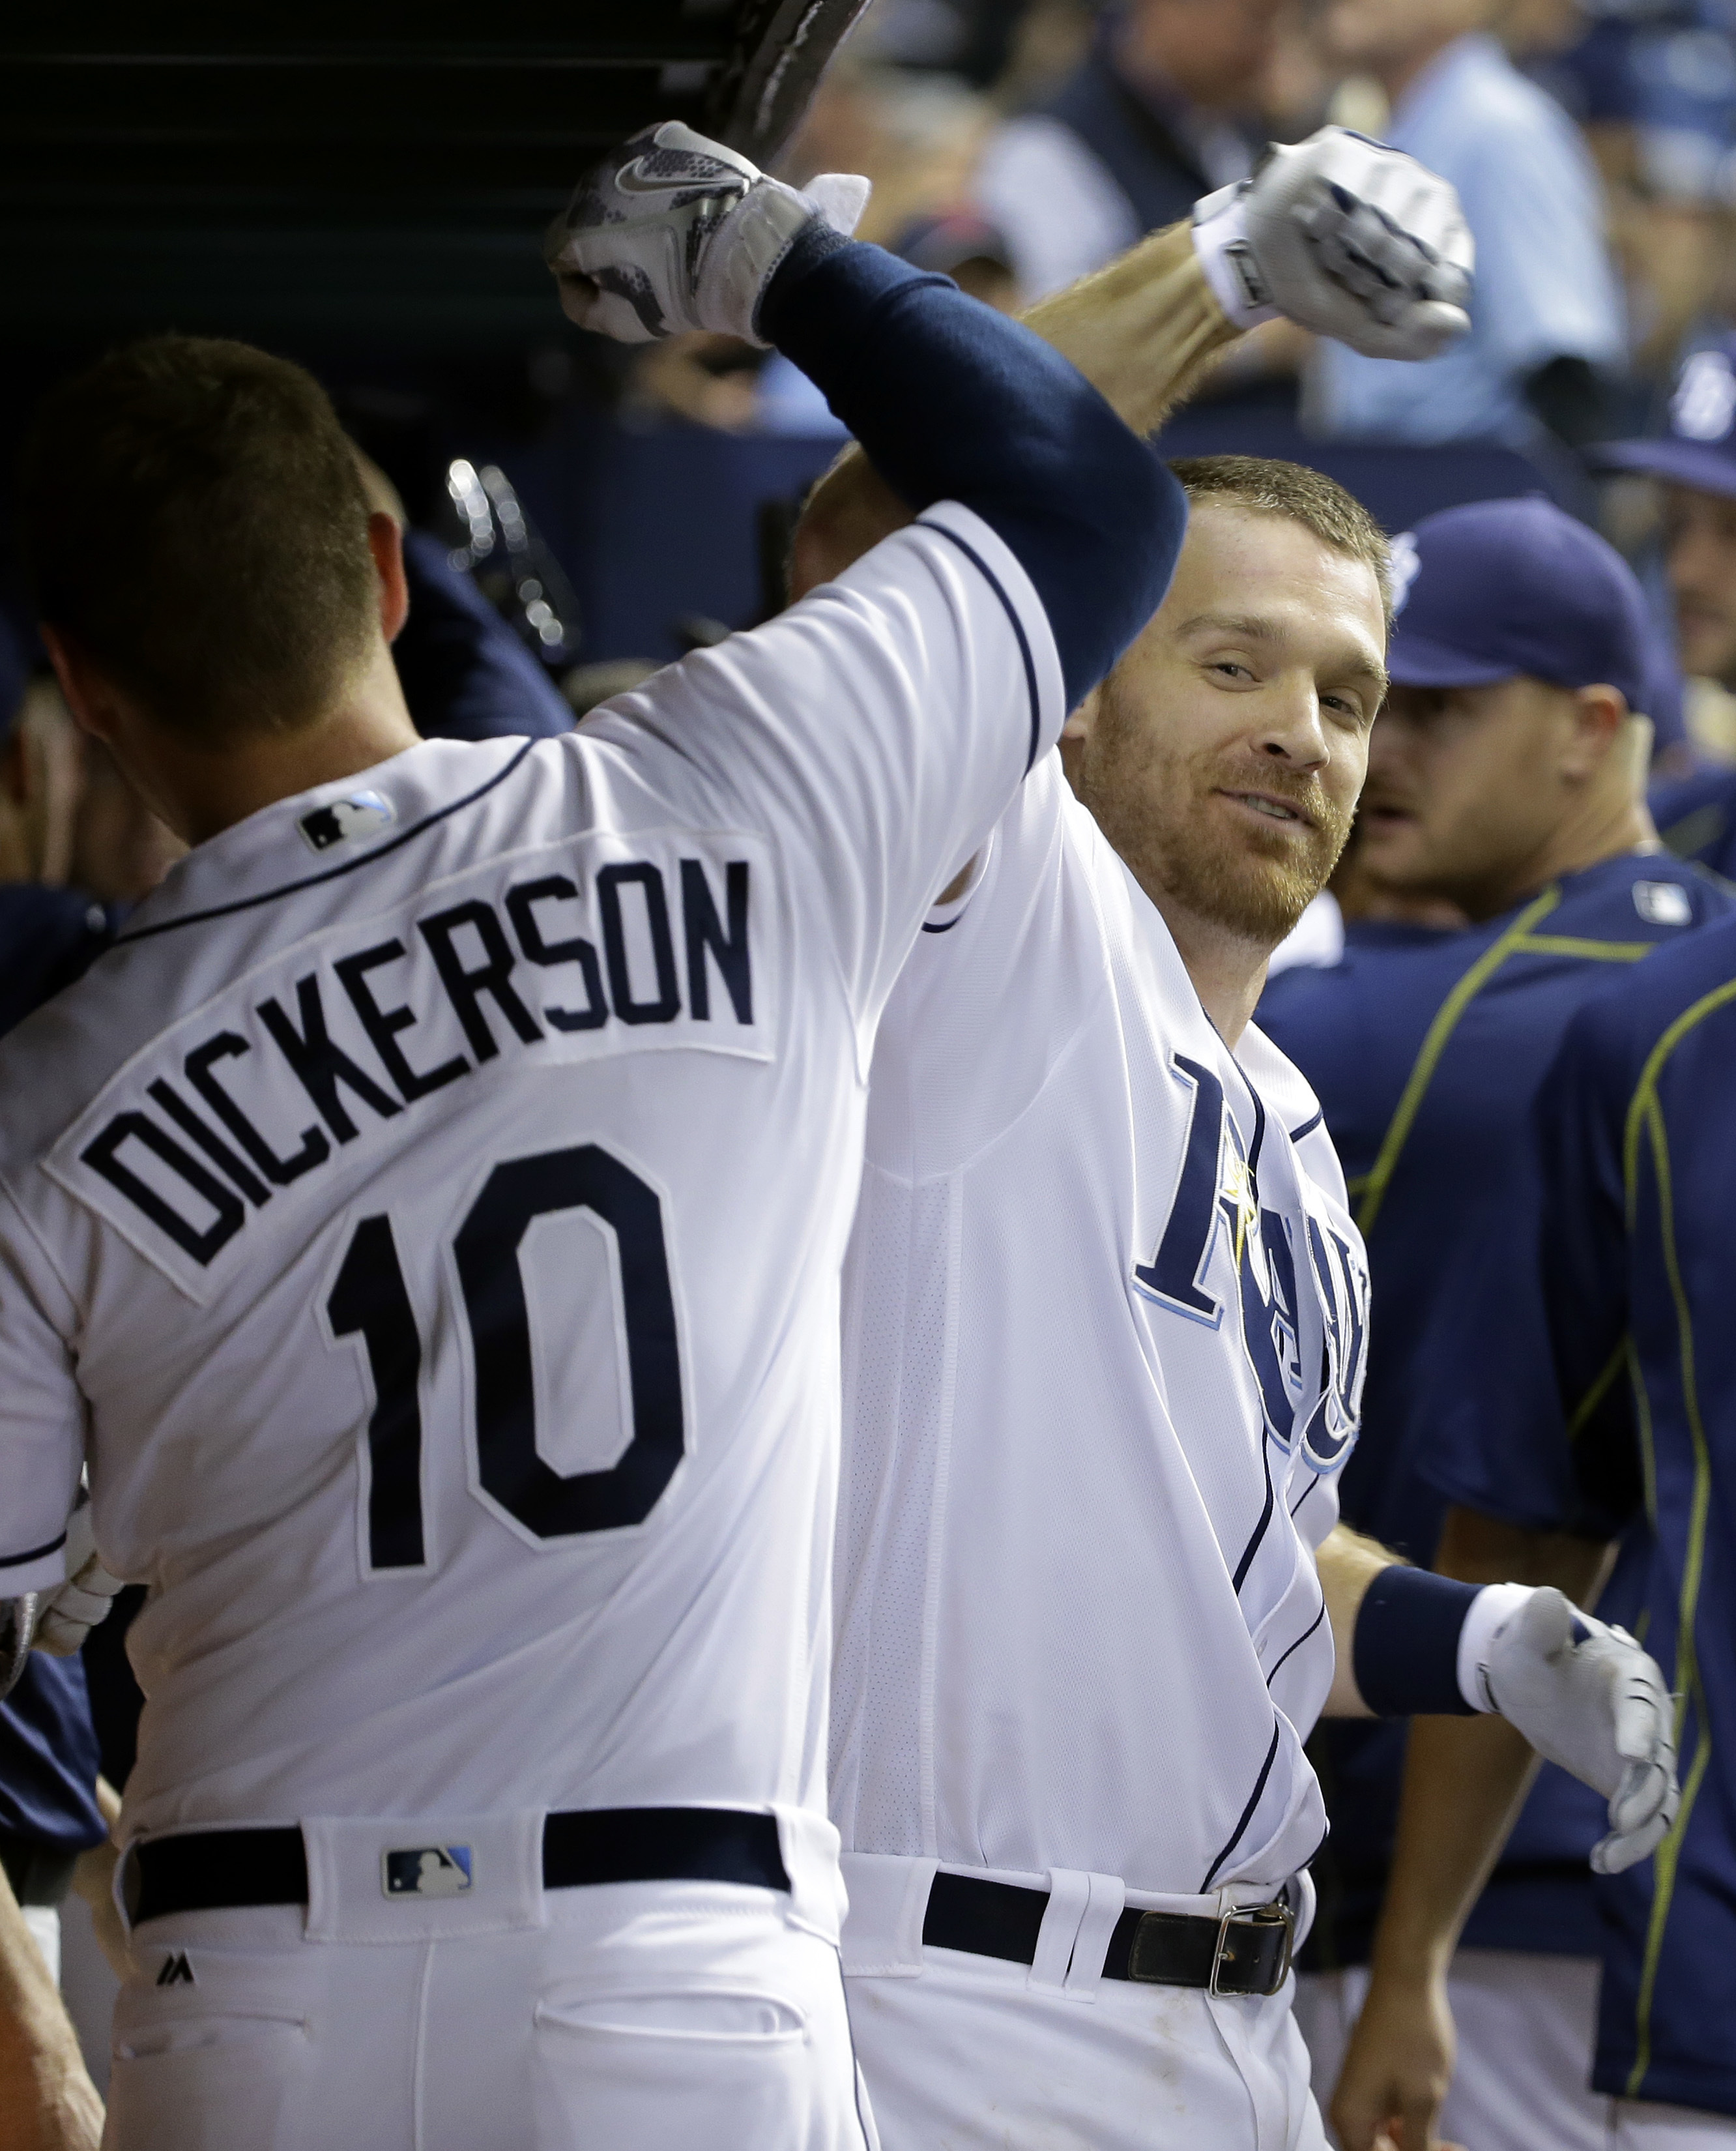 Tampa Bay Rays' Logan Forsythe, right, celebrates with teammate Corey Dickerson after hitting a two-run home run off Cleveland Indians starting pitcher Corey Kluber during the eighth inning of a baseball game Tuesday, April 12, 2016, in St. Petersburg, Fl